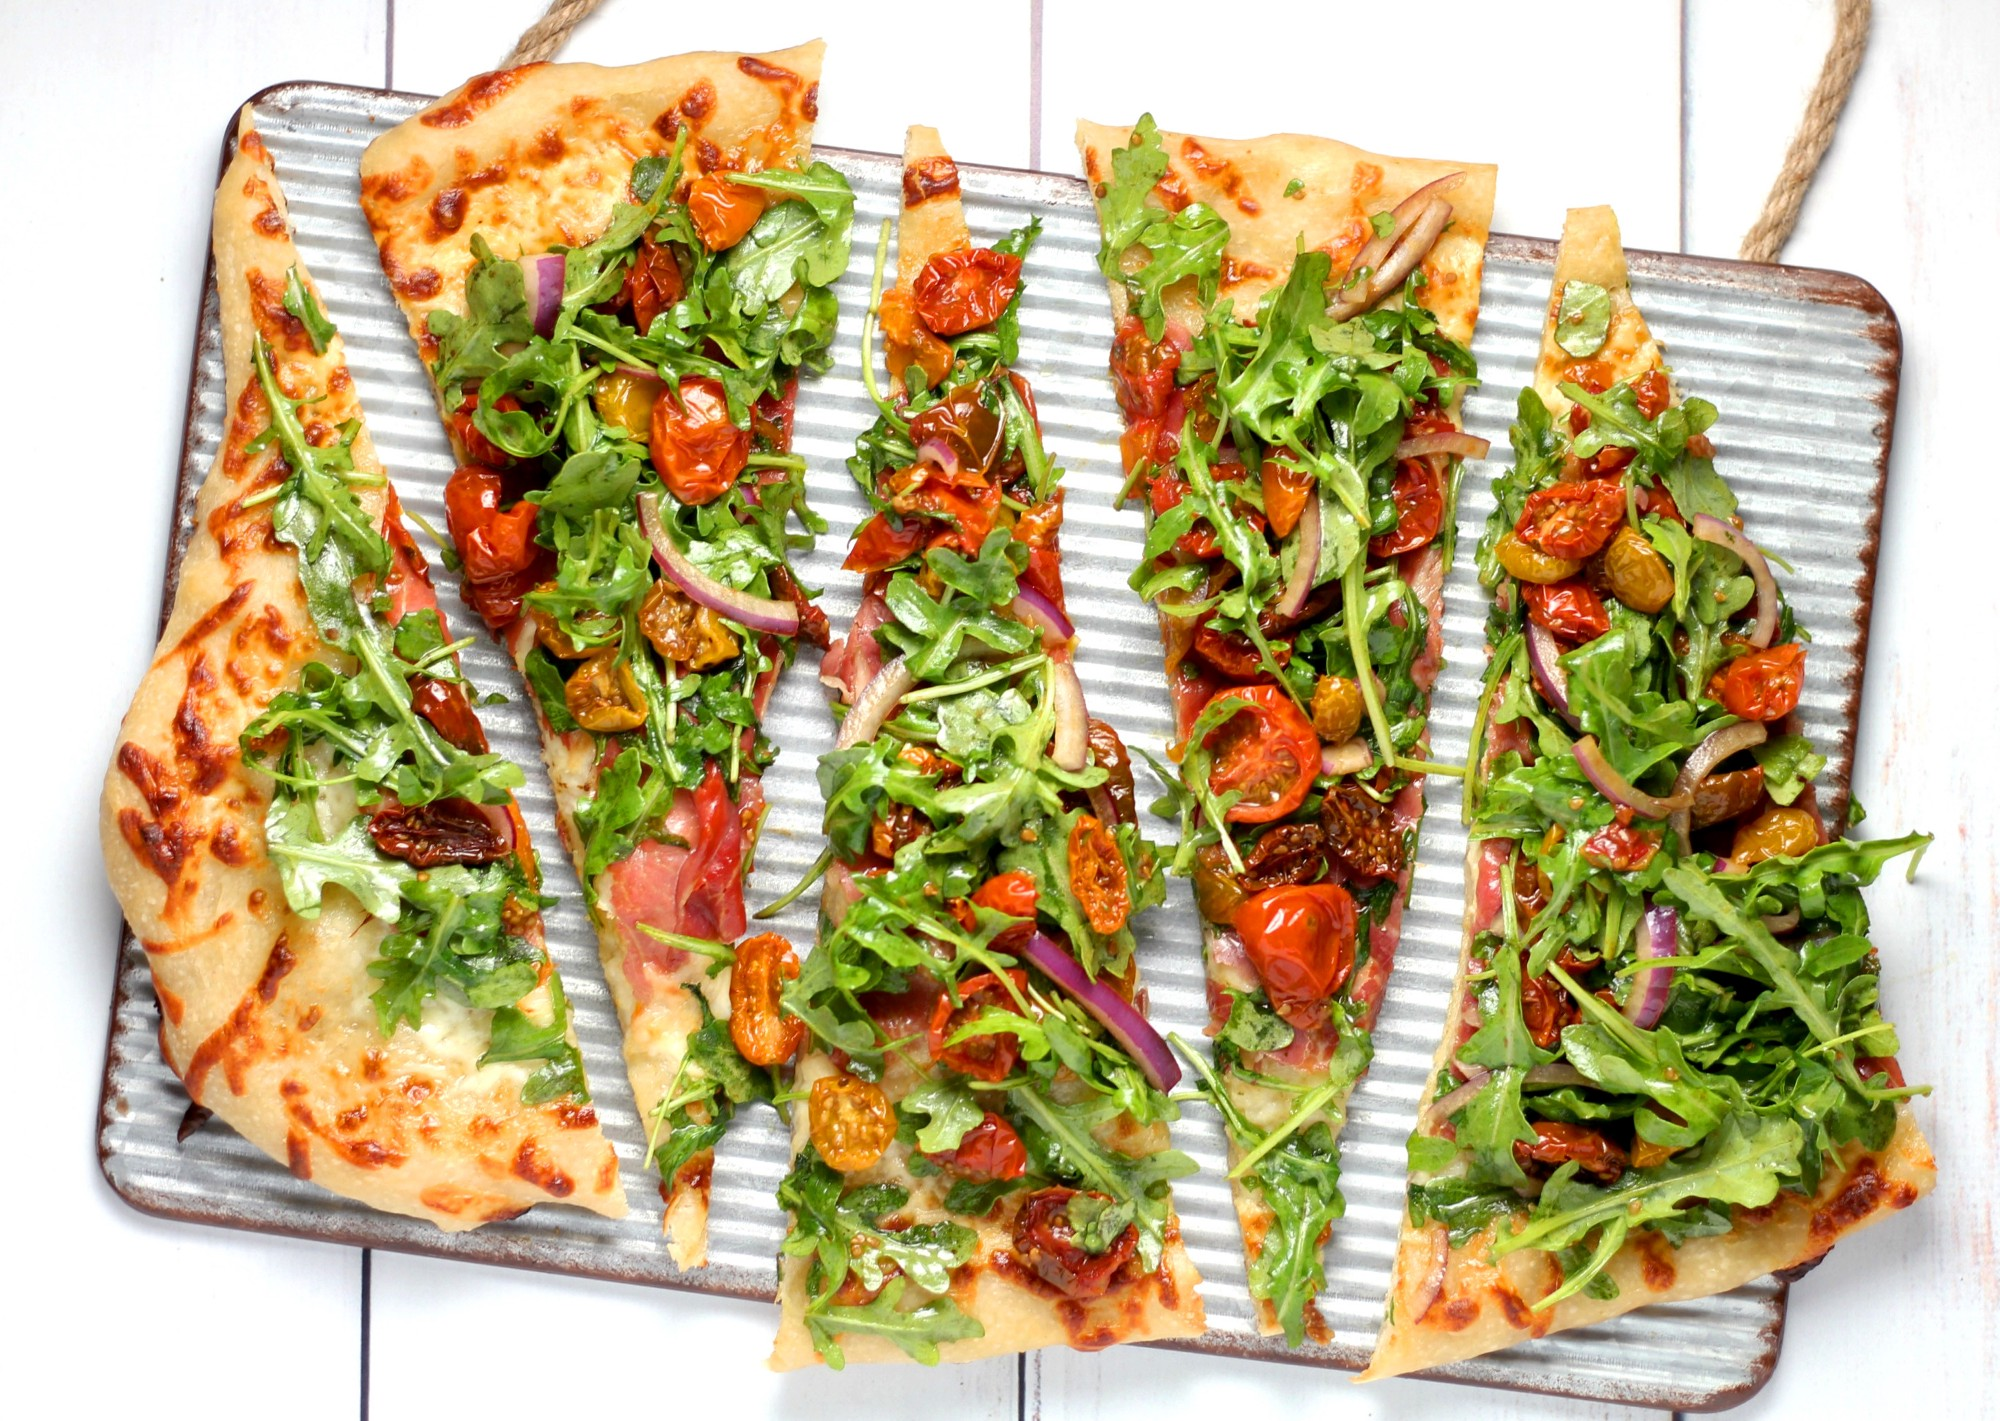 Rack of 5 big, veggie pizza slices that will grab eaters' and menu readers' attention.